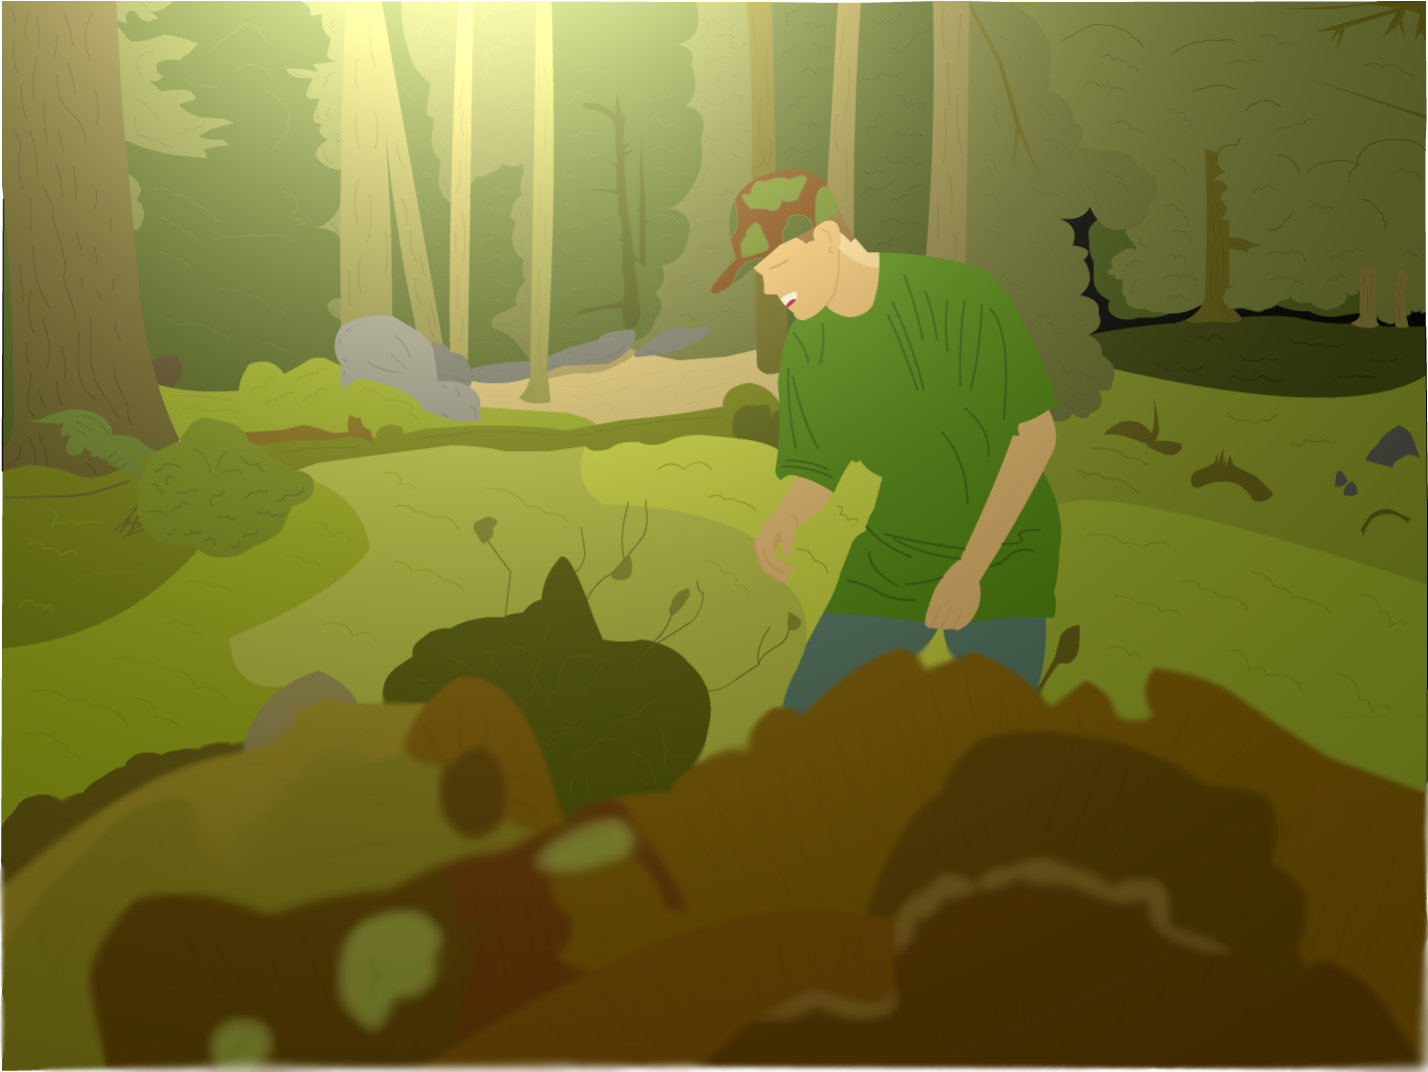 Dan in a forest